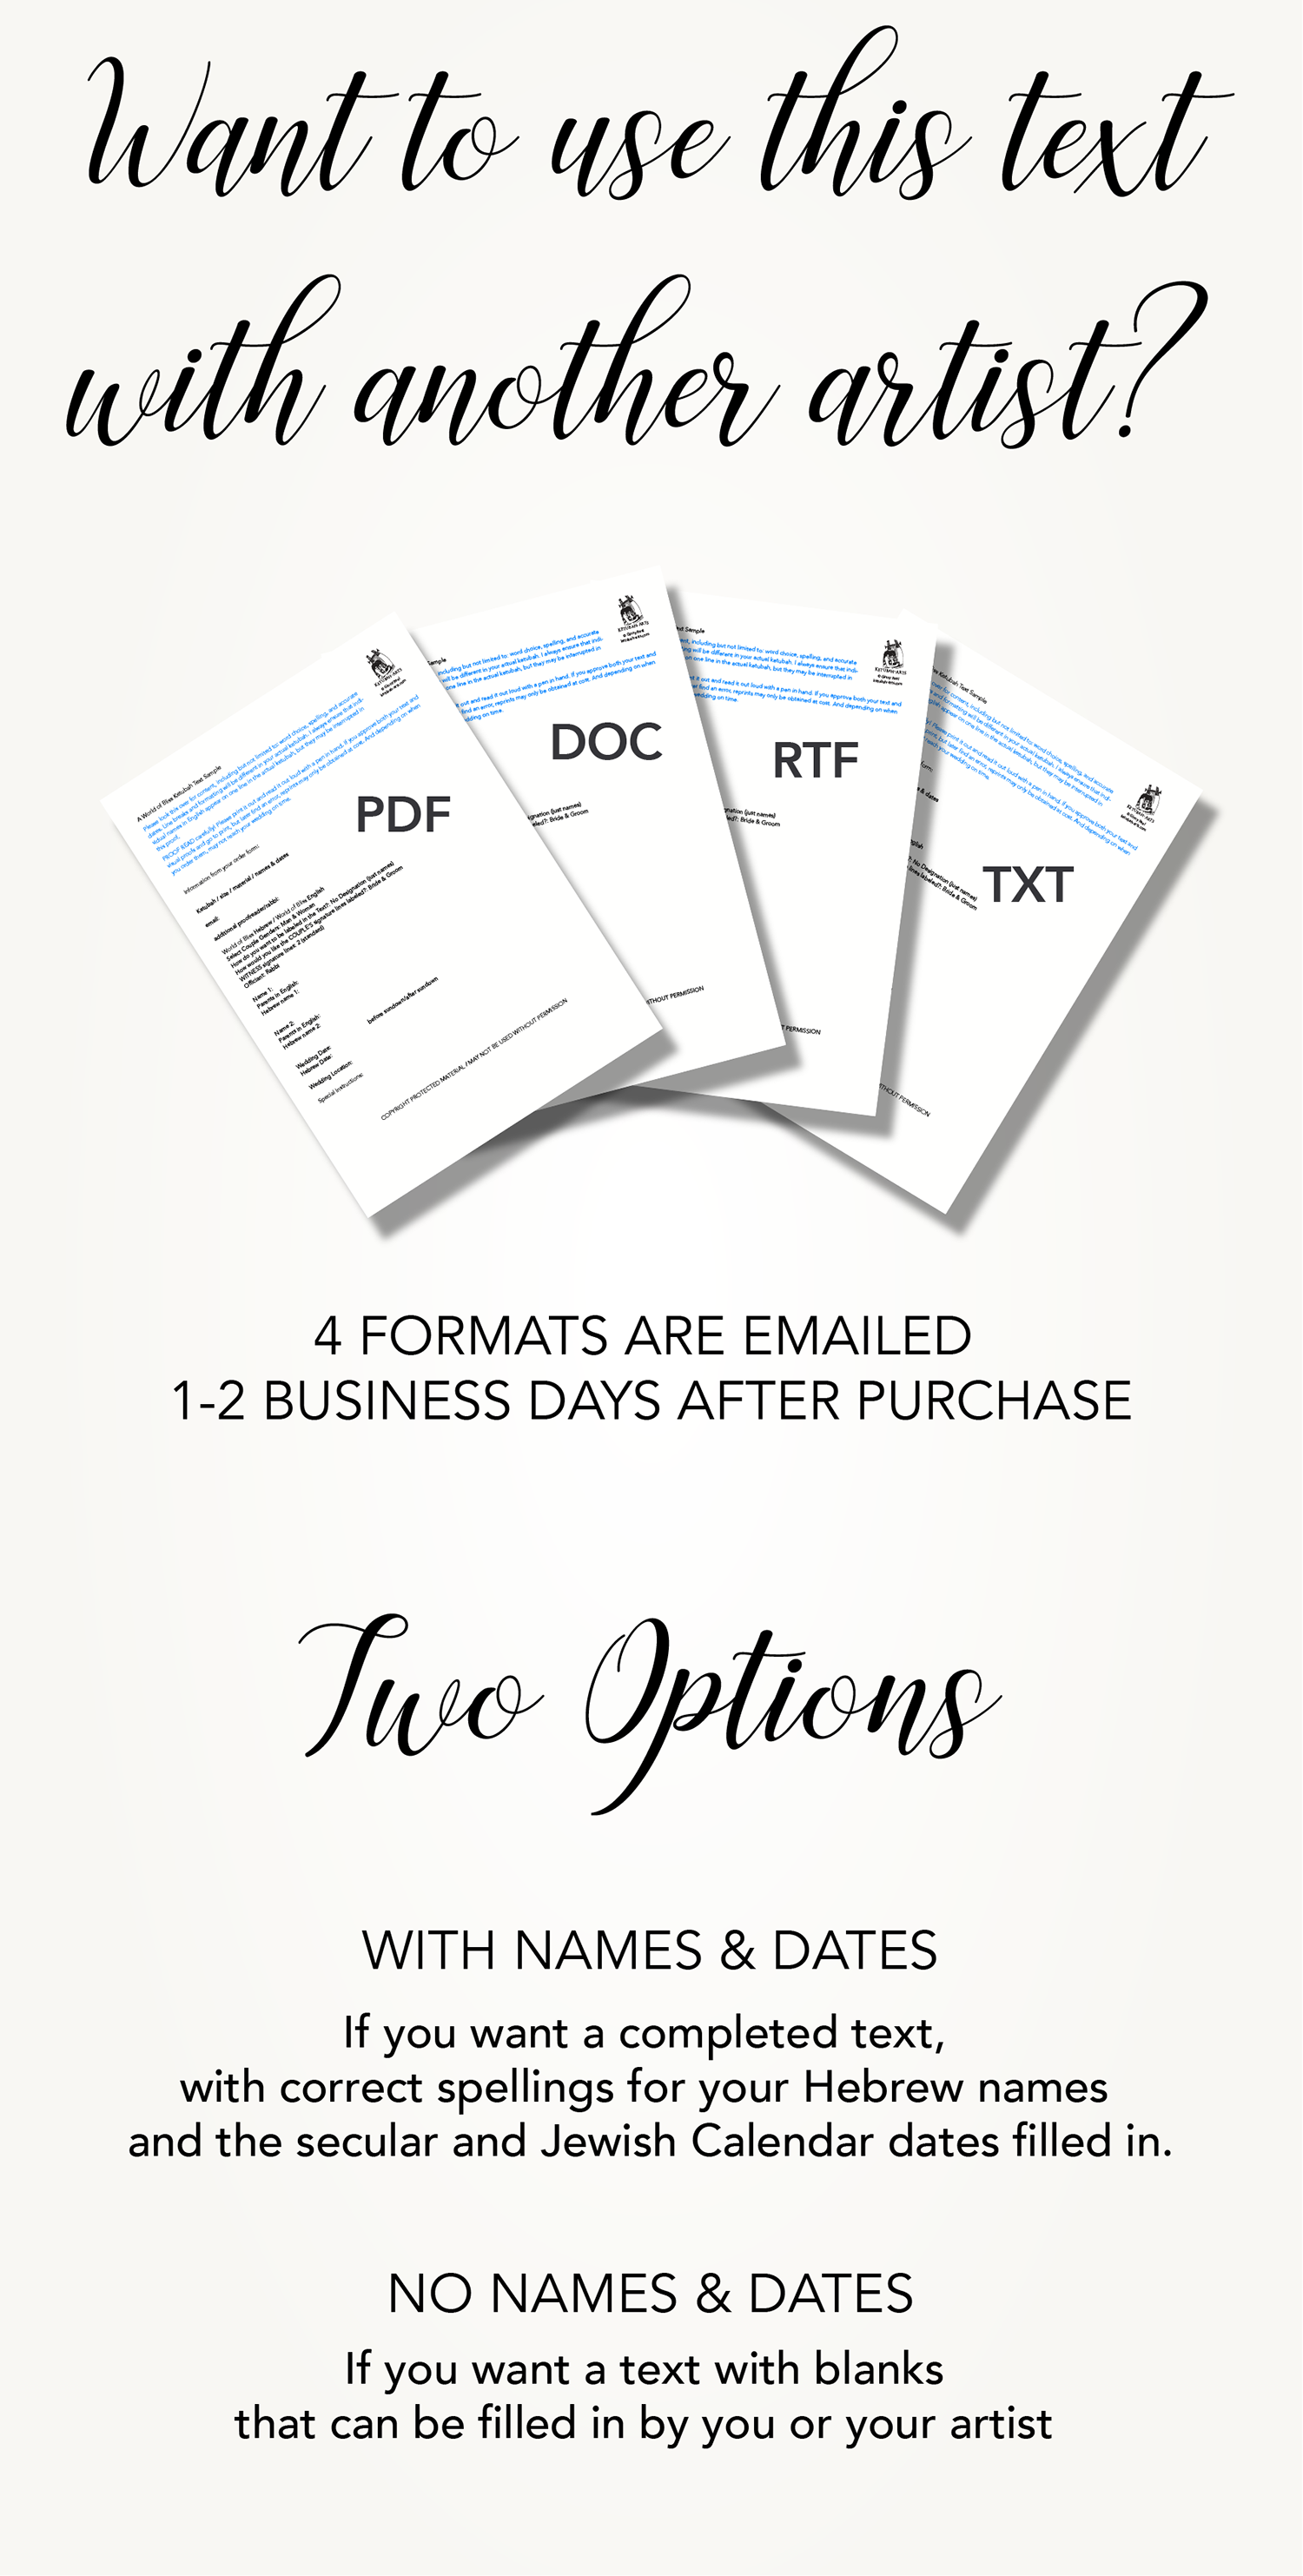 Want to use this text illustration vertical-01.png